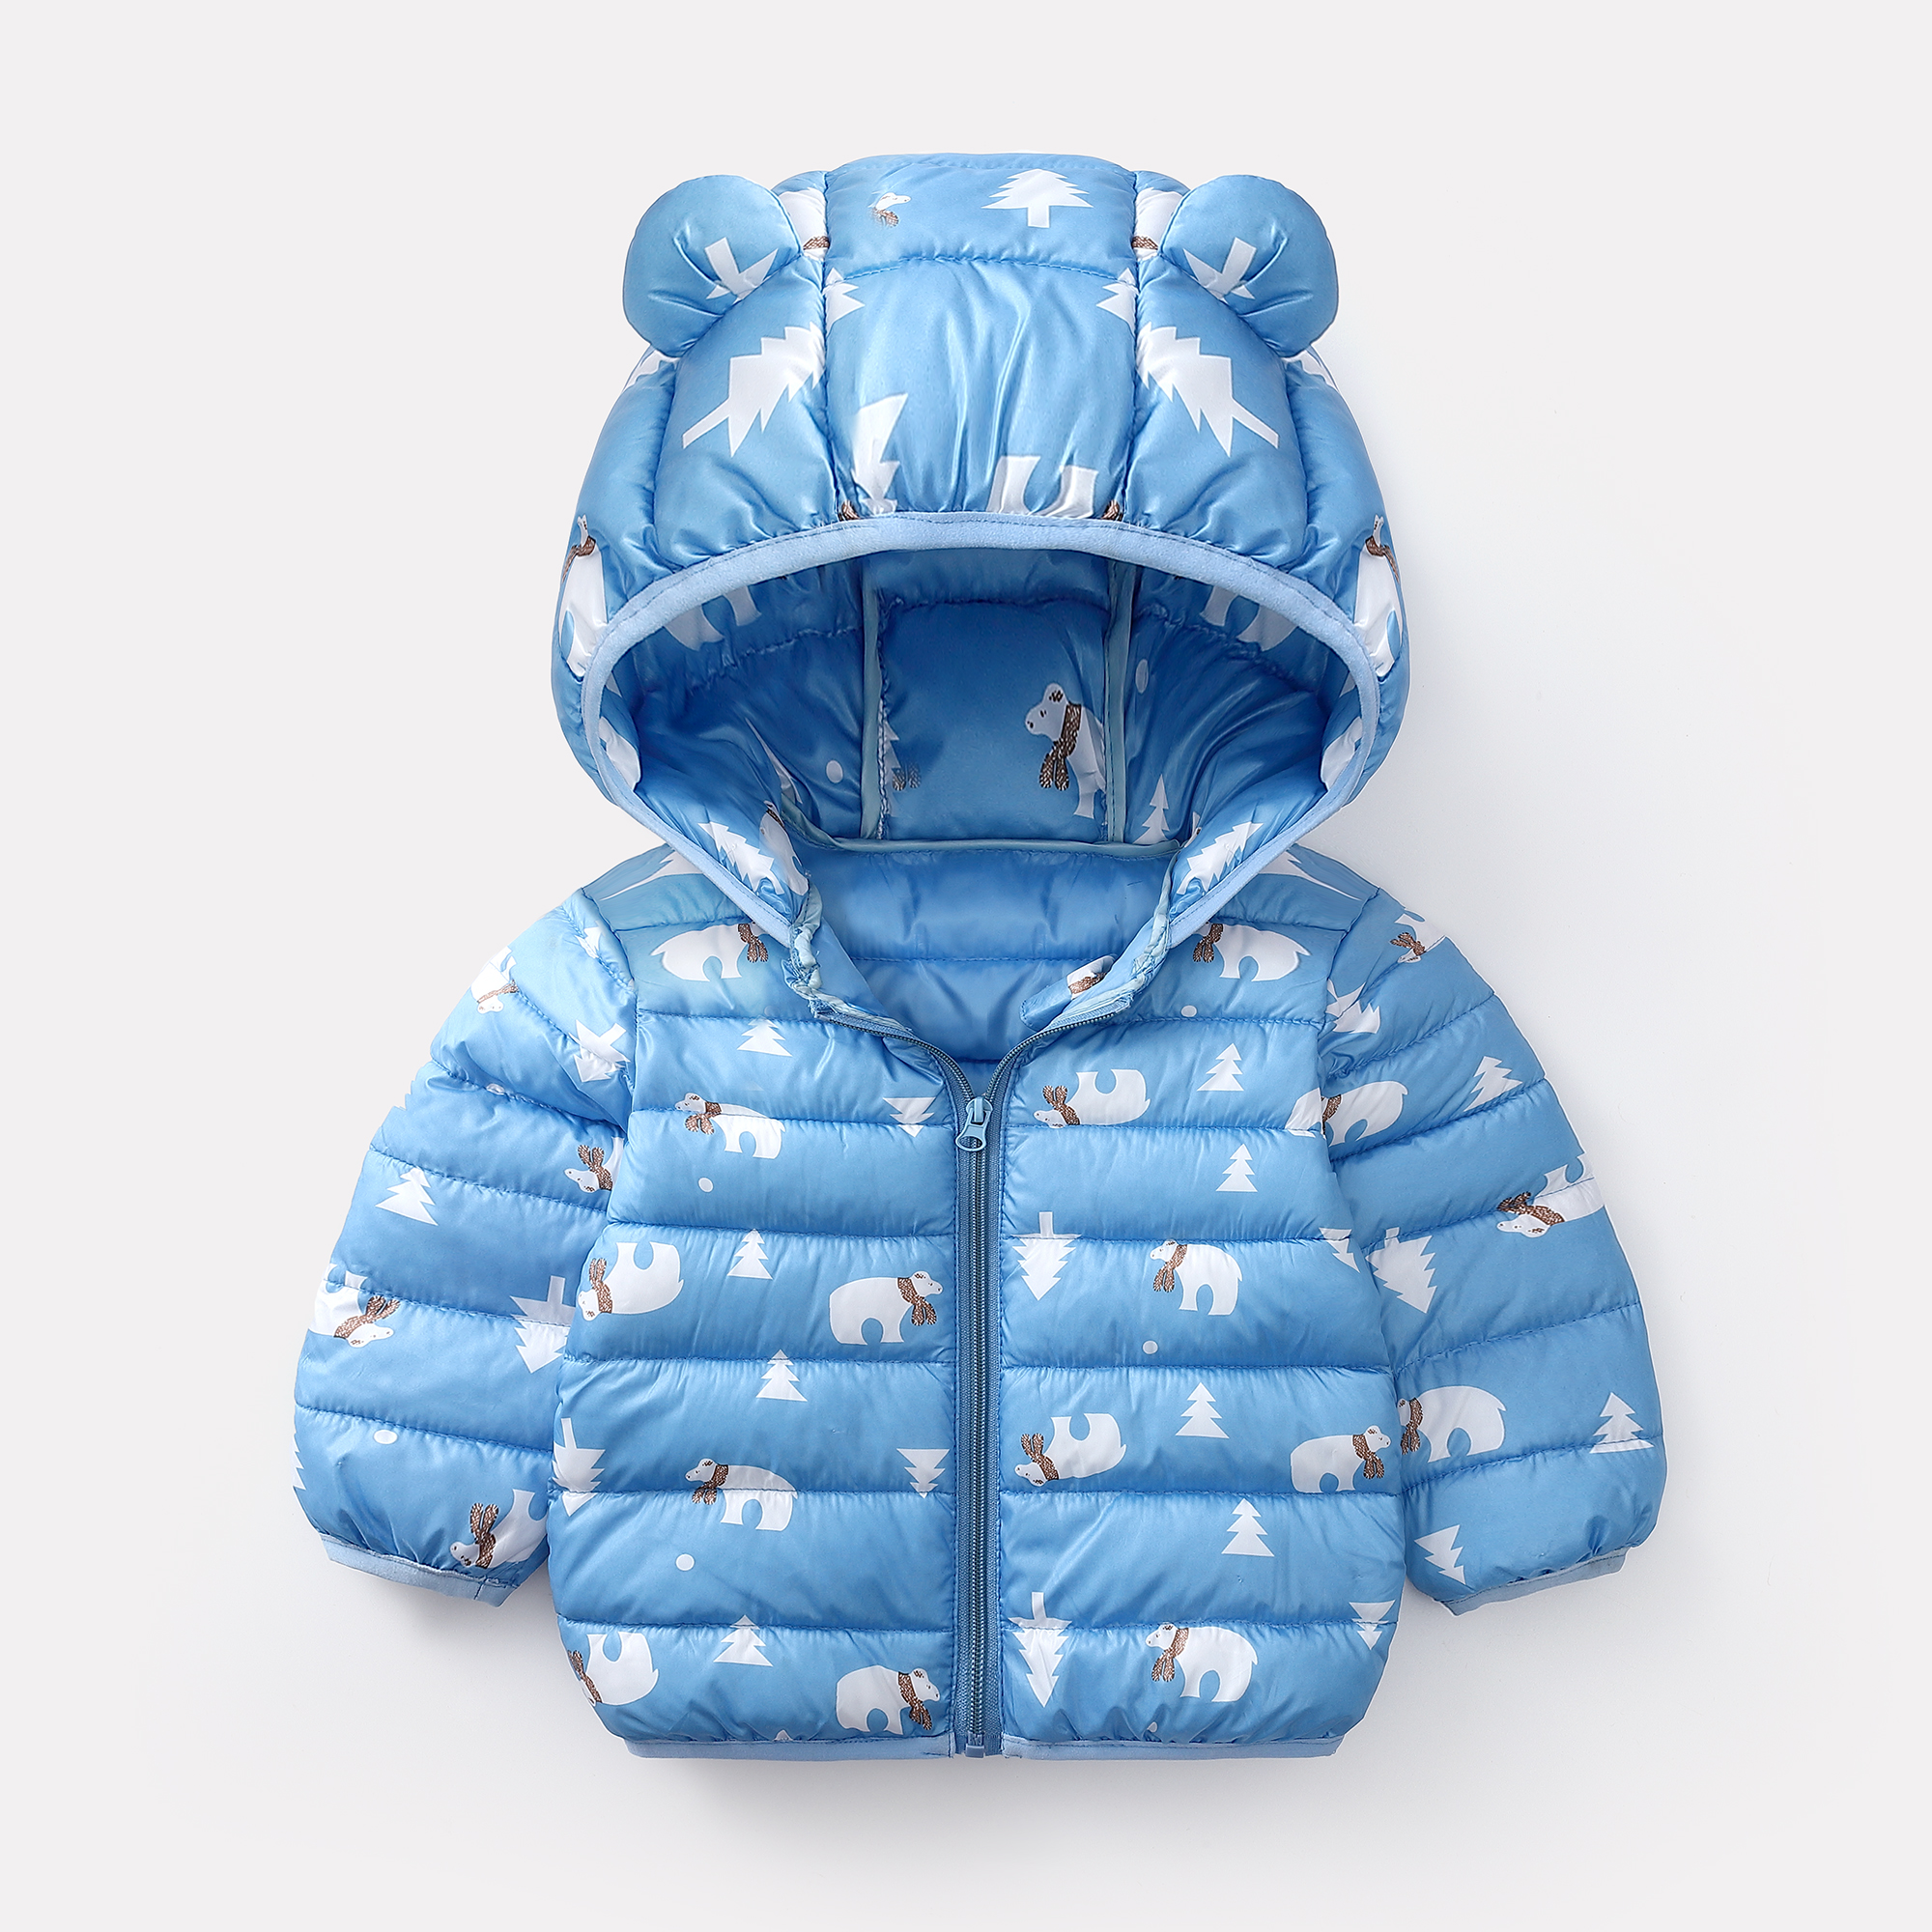 New Baby Winter Coats Down Cotton Coat Jacket kids Baby Clothes Hooded infant Down Jacket For Boys And Girls(China)